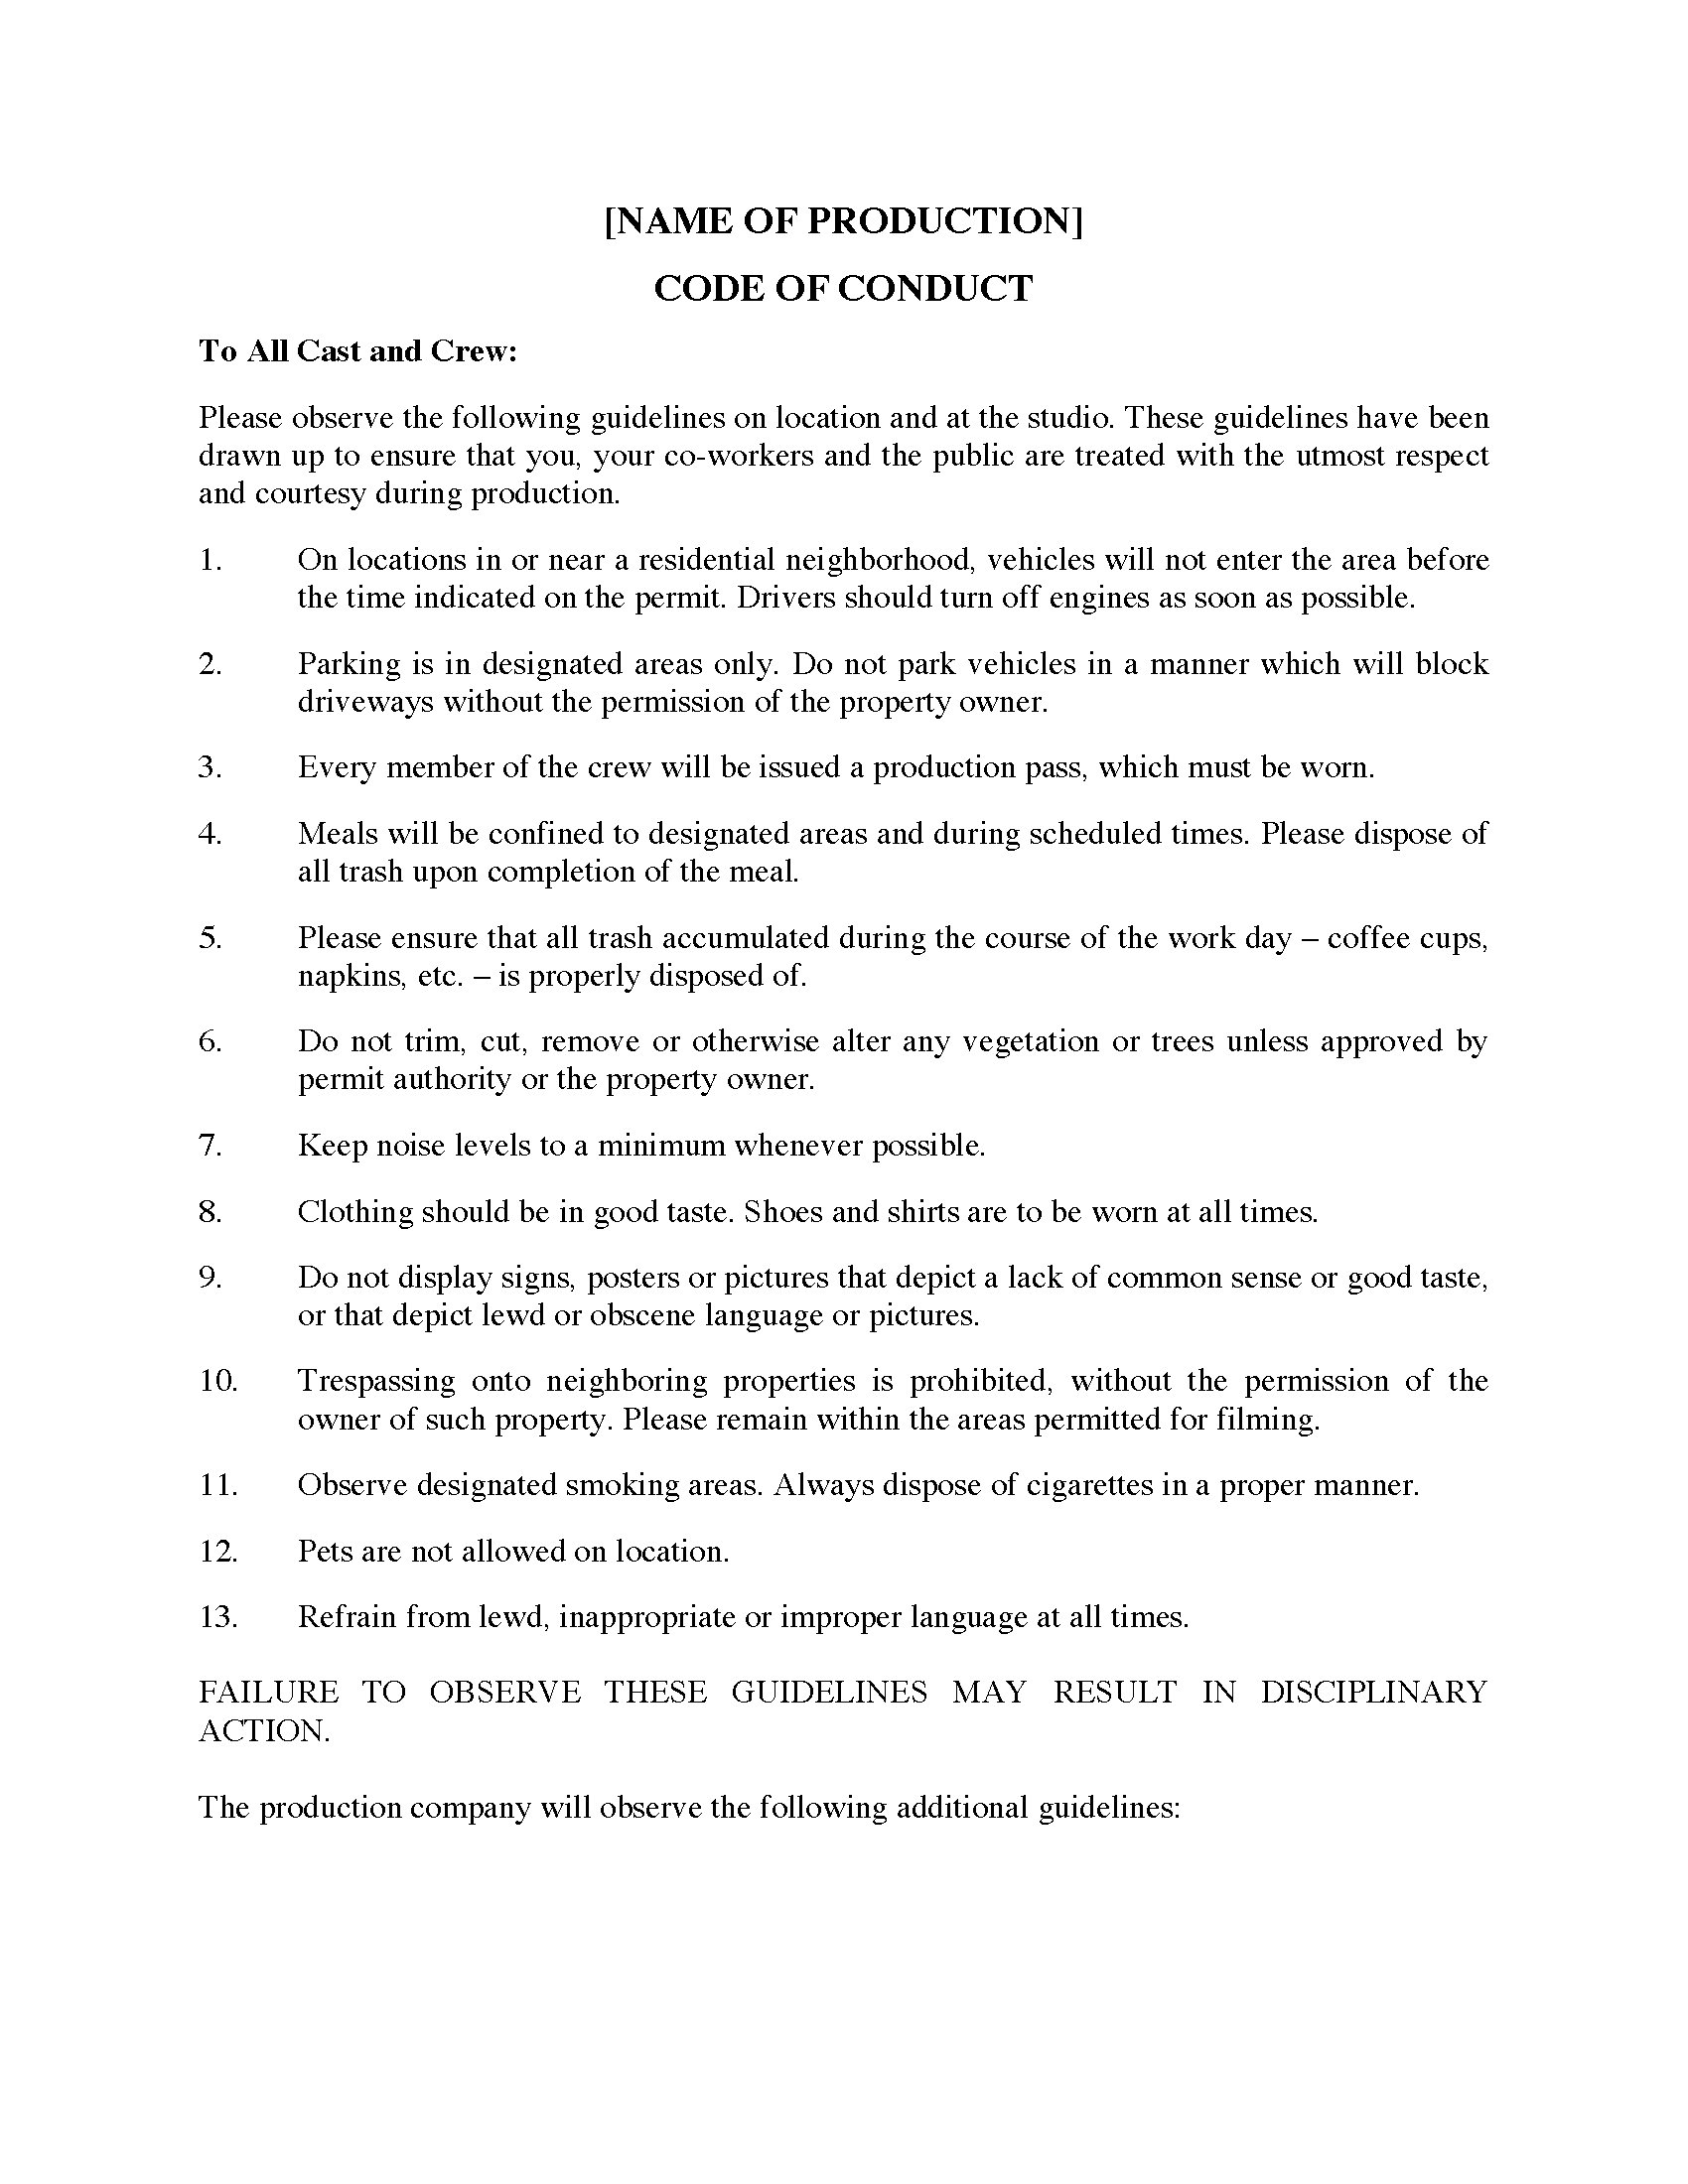 Code of conduct for film crew legal forms and business templates picture of code of conduct for film crew accmission Gallery